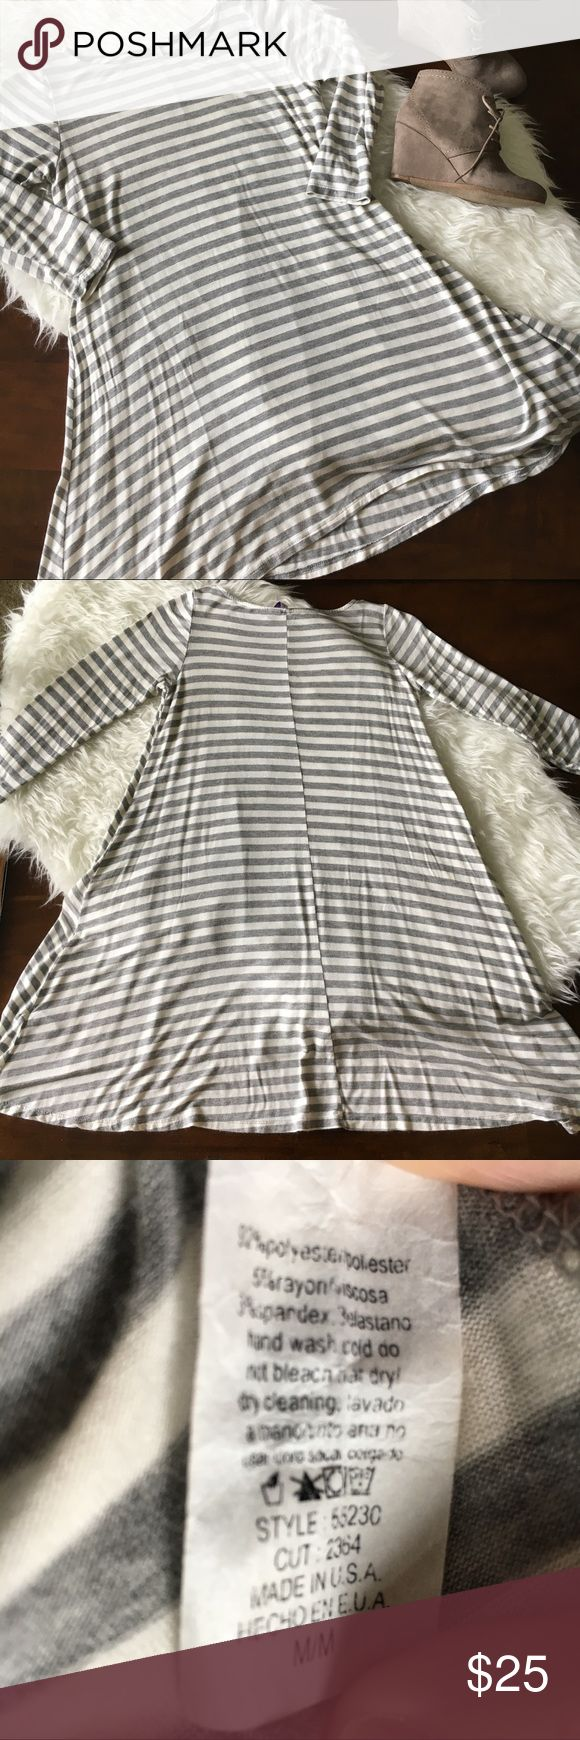 "Gray and White Striped Swing Dress/ Tunic Excellent used condition. Super soft gray and white 3/4 sleeve striped swing dress. Can be worn alone, or with leggings or skinny jeans and booties for a cute fall look! Size medium. Approx measurements: armpit to armpit: 17 1/2"", shoulder to hem: 32"", sleeve length: 12 1/2"". No tears, holes, or stains. Smoke free home. No trades please. Dresses"